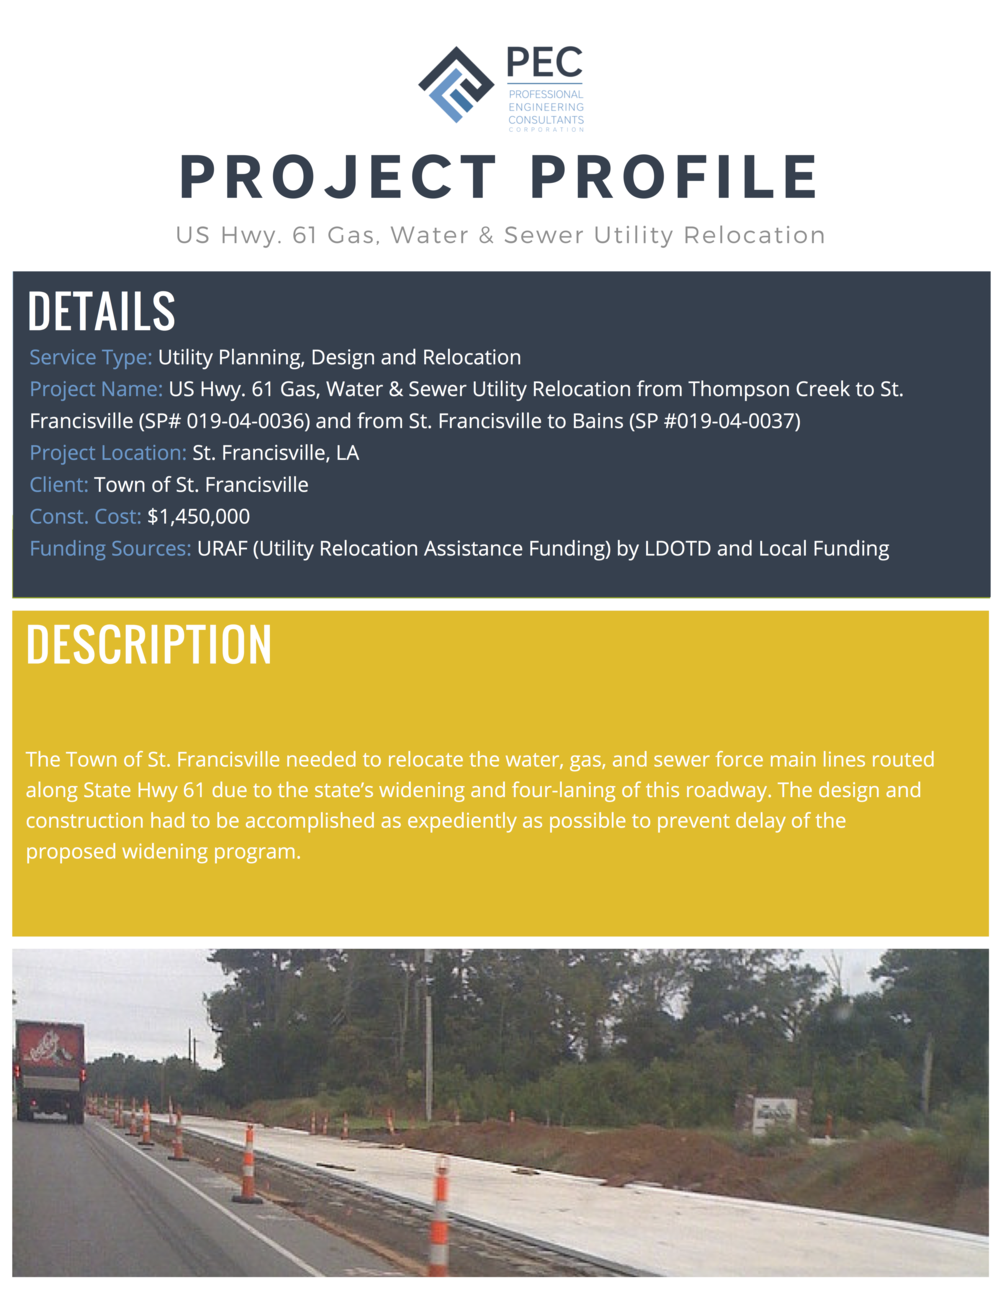 Project Profile_USHWY61GasFINAL.jpg